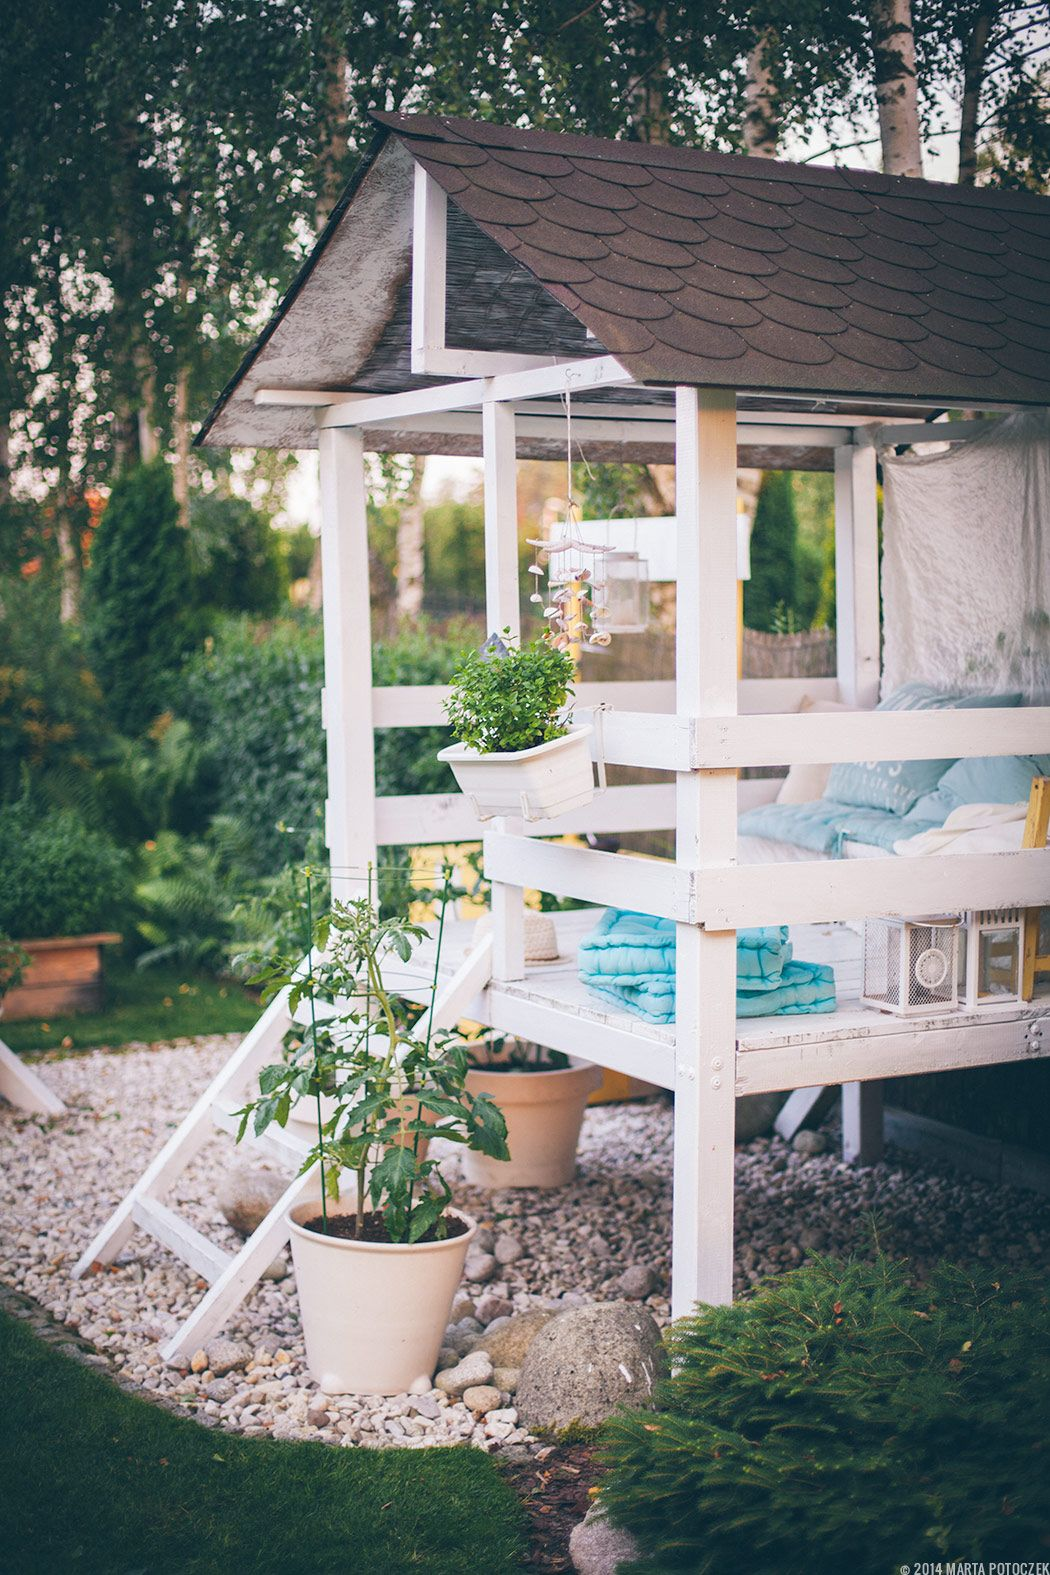 25 Amazing Outdoor Playhouse Ideas To Keep Your Kids